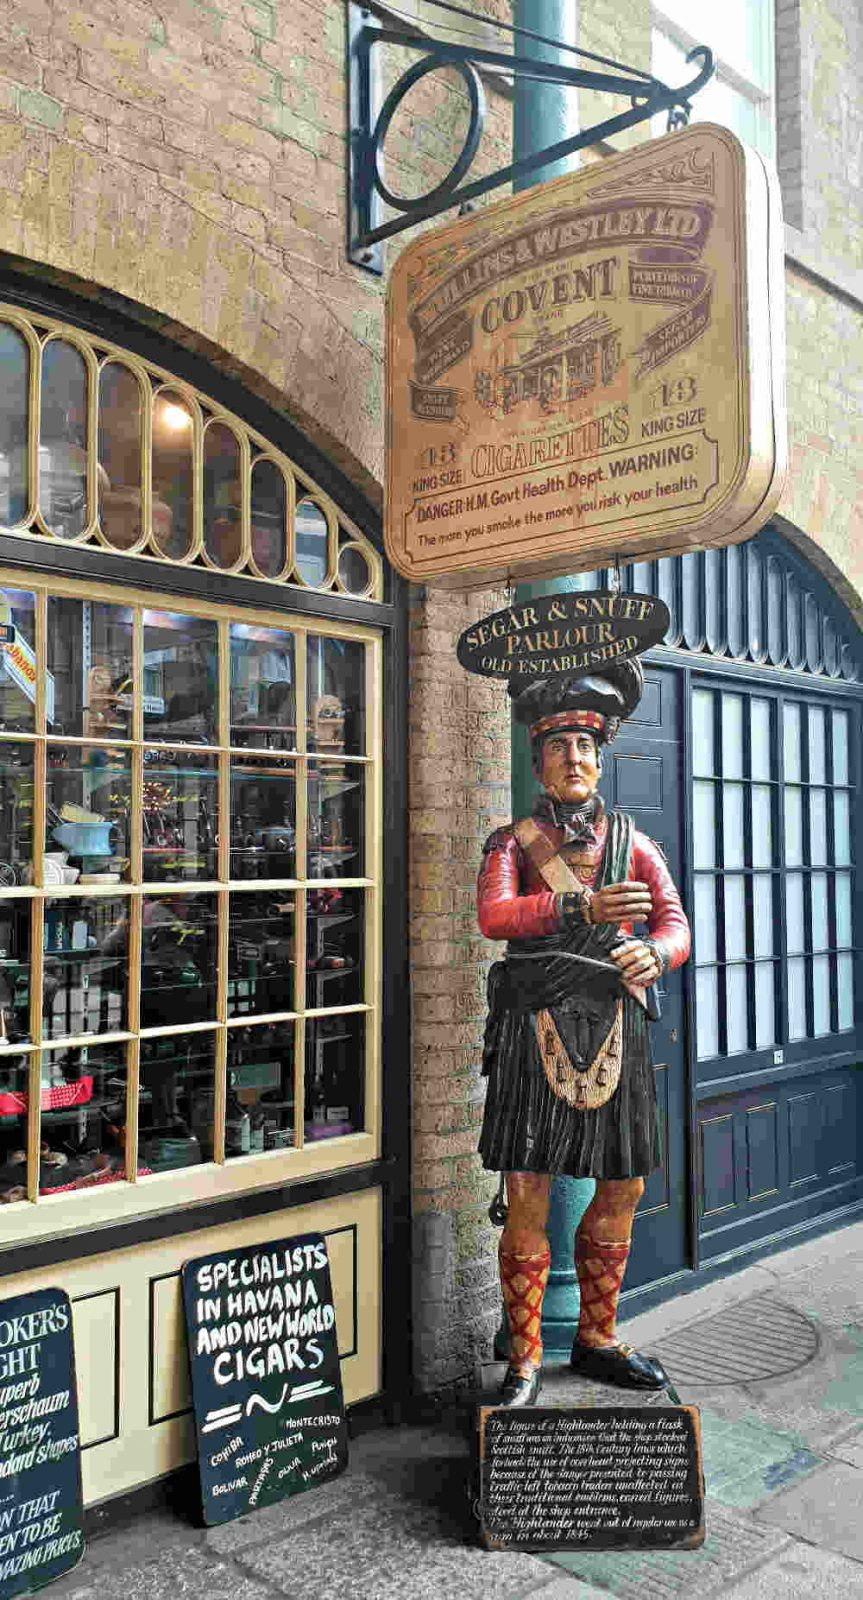 Covent Garden in one day, things to do in Covent Garden, guide to Covent Garden, snuff shops London, Segar and Snuff